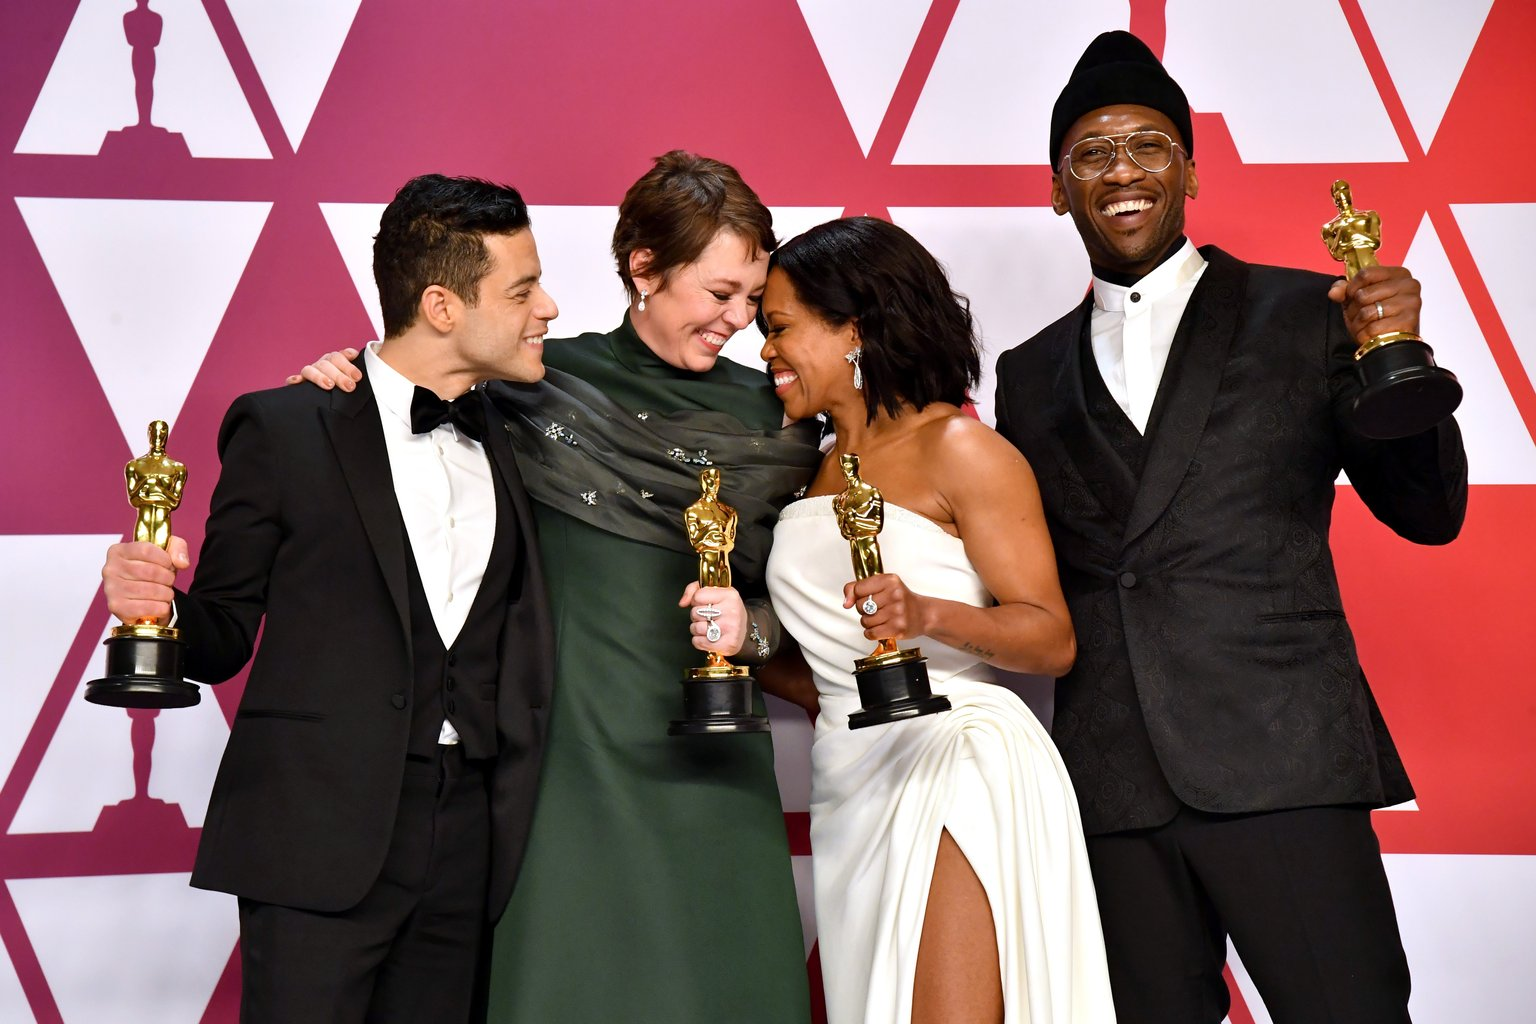 Photo: Rami Malek (Bohemian Rhapsody), Olivia Colman (The Favourite), Regina King (If Beale Street Could Talk) and Mahershala Ali (Green Book)